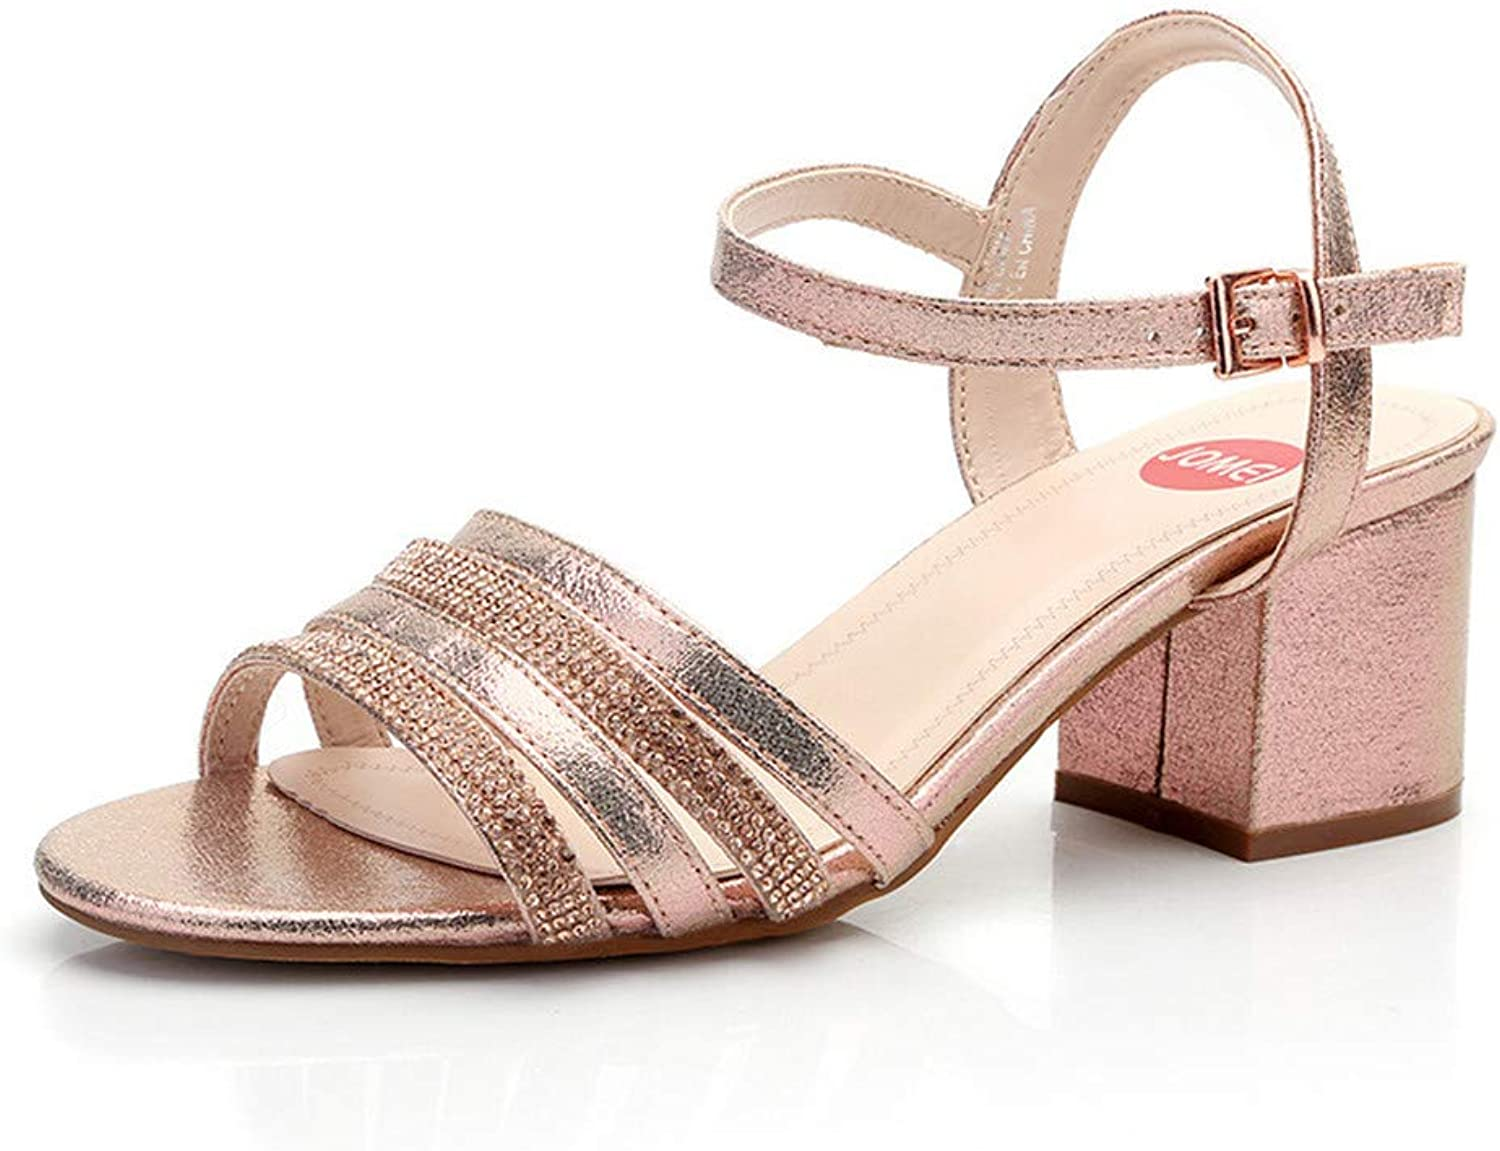 Sandals Ladies Fashion Button Large-Size Women's shoes Coarse-Heeled Water Diamond High-Heeled shoes